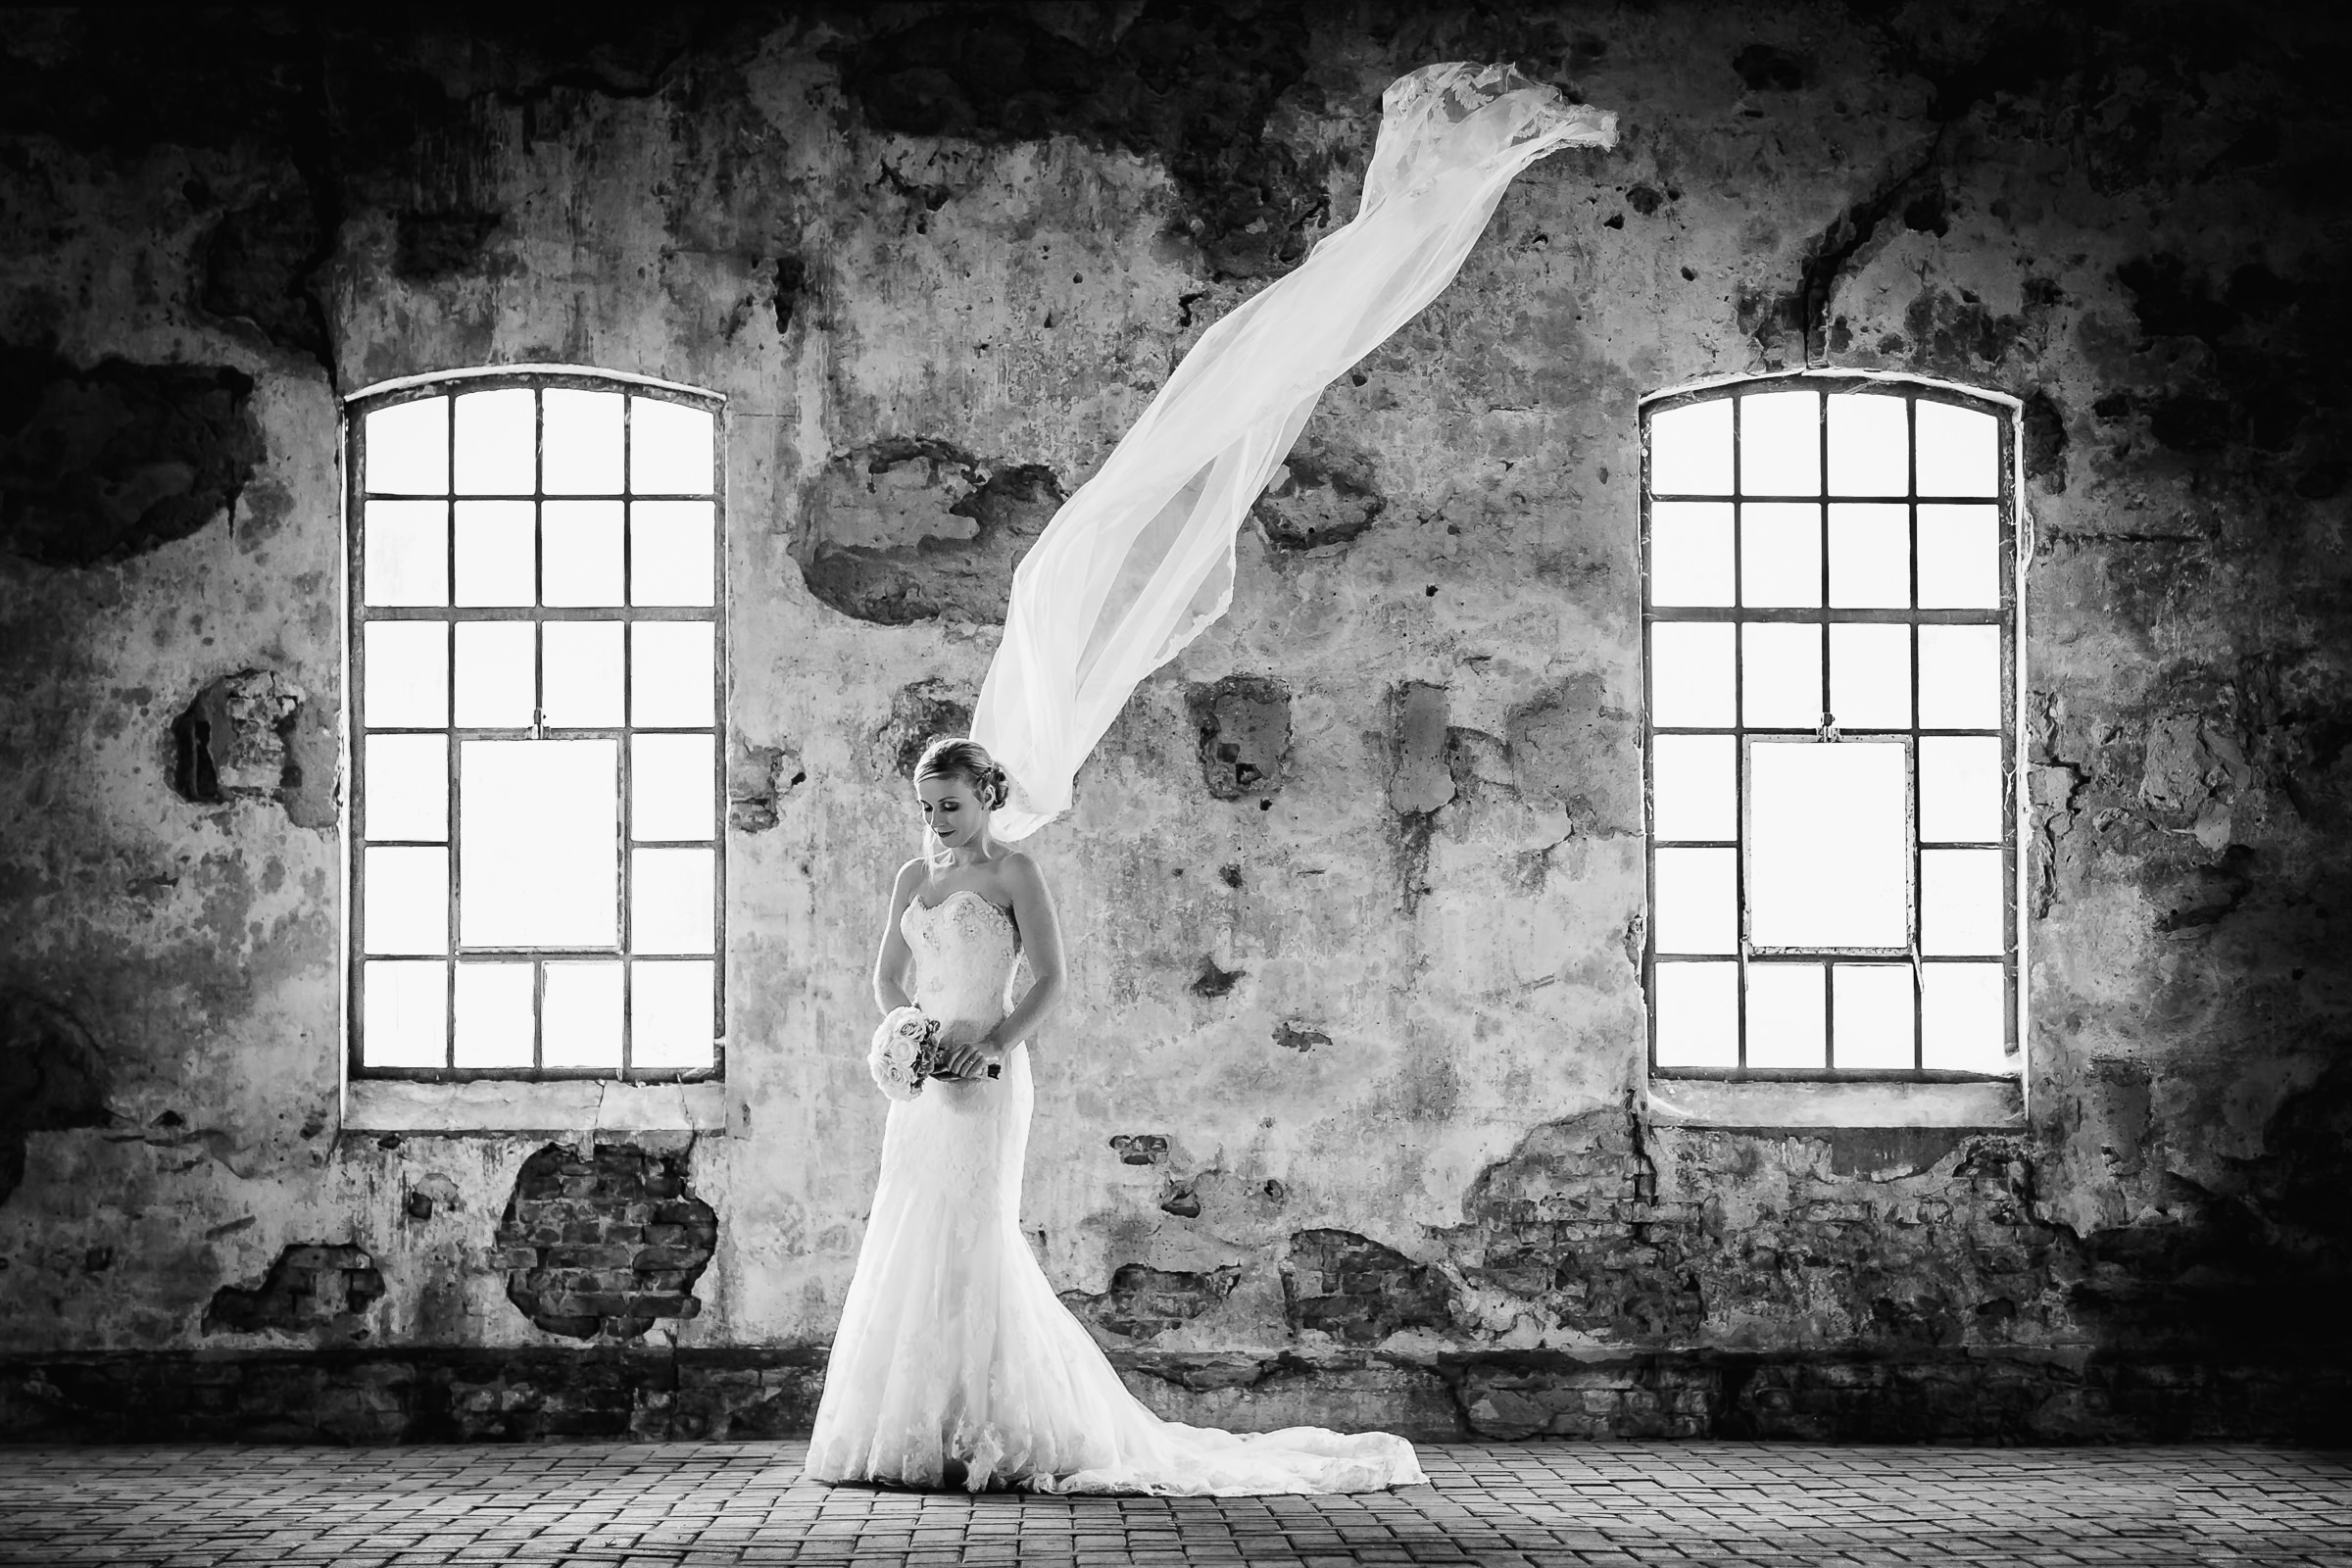 Bride with airborne veil against crumbling interior wall - photo by Peter van der Lingen Wedding Photography